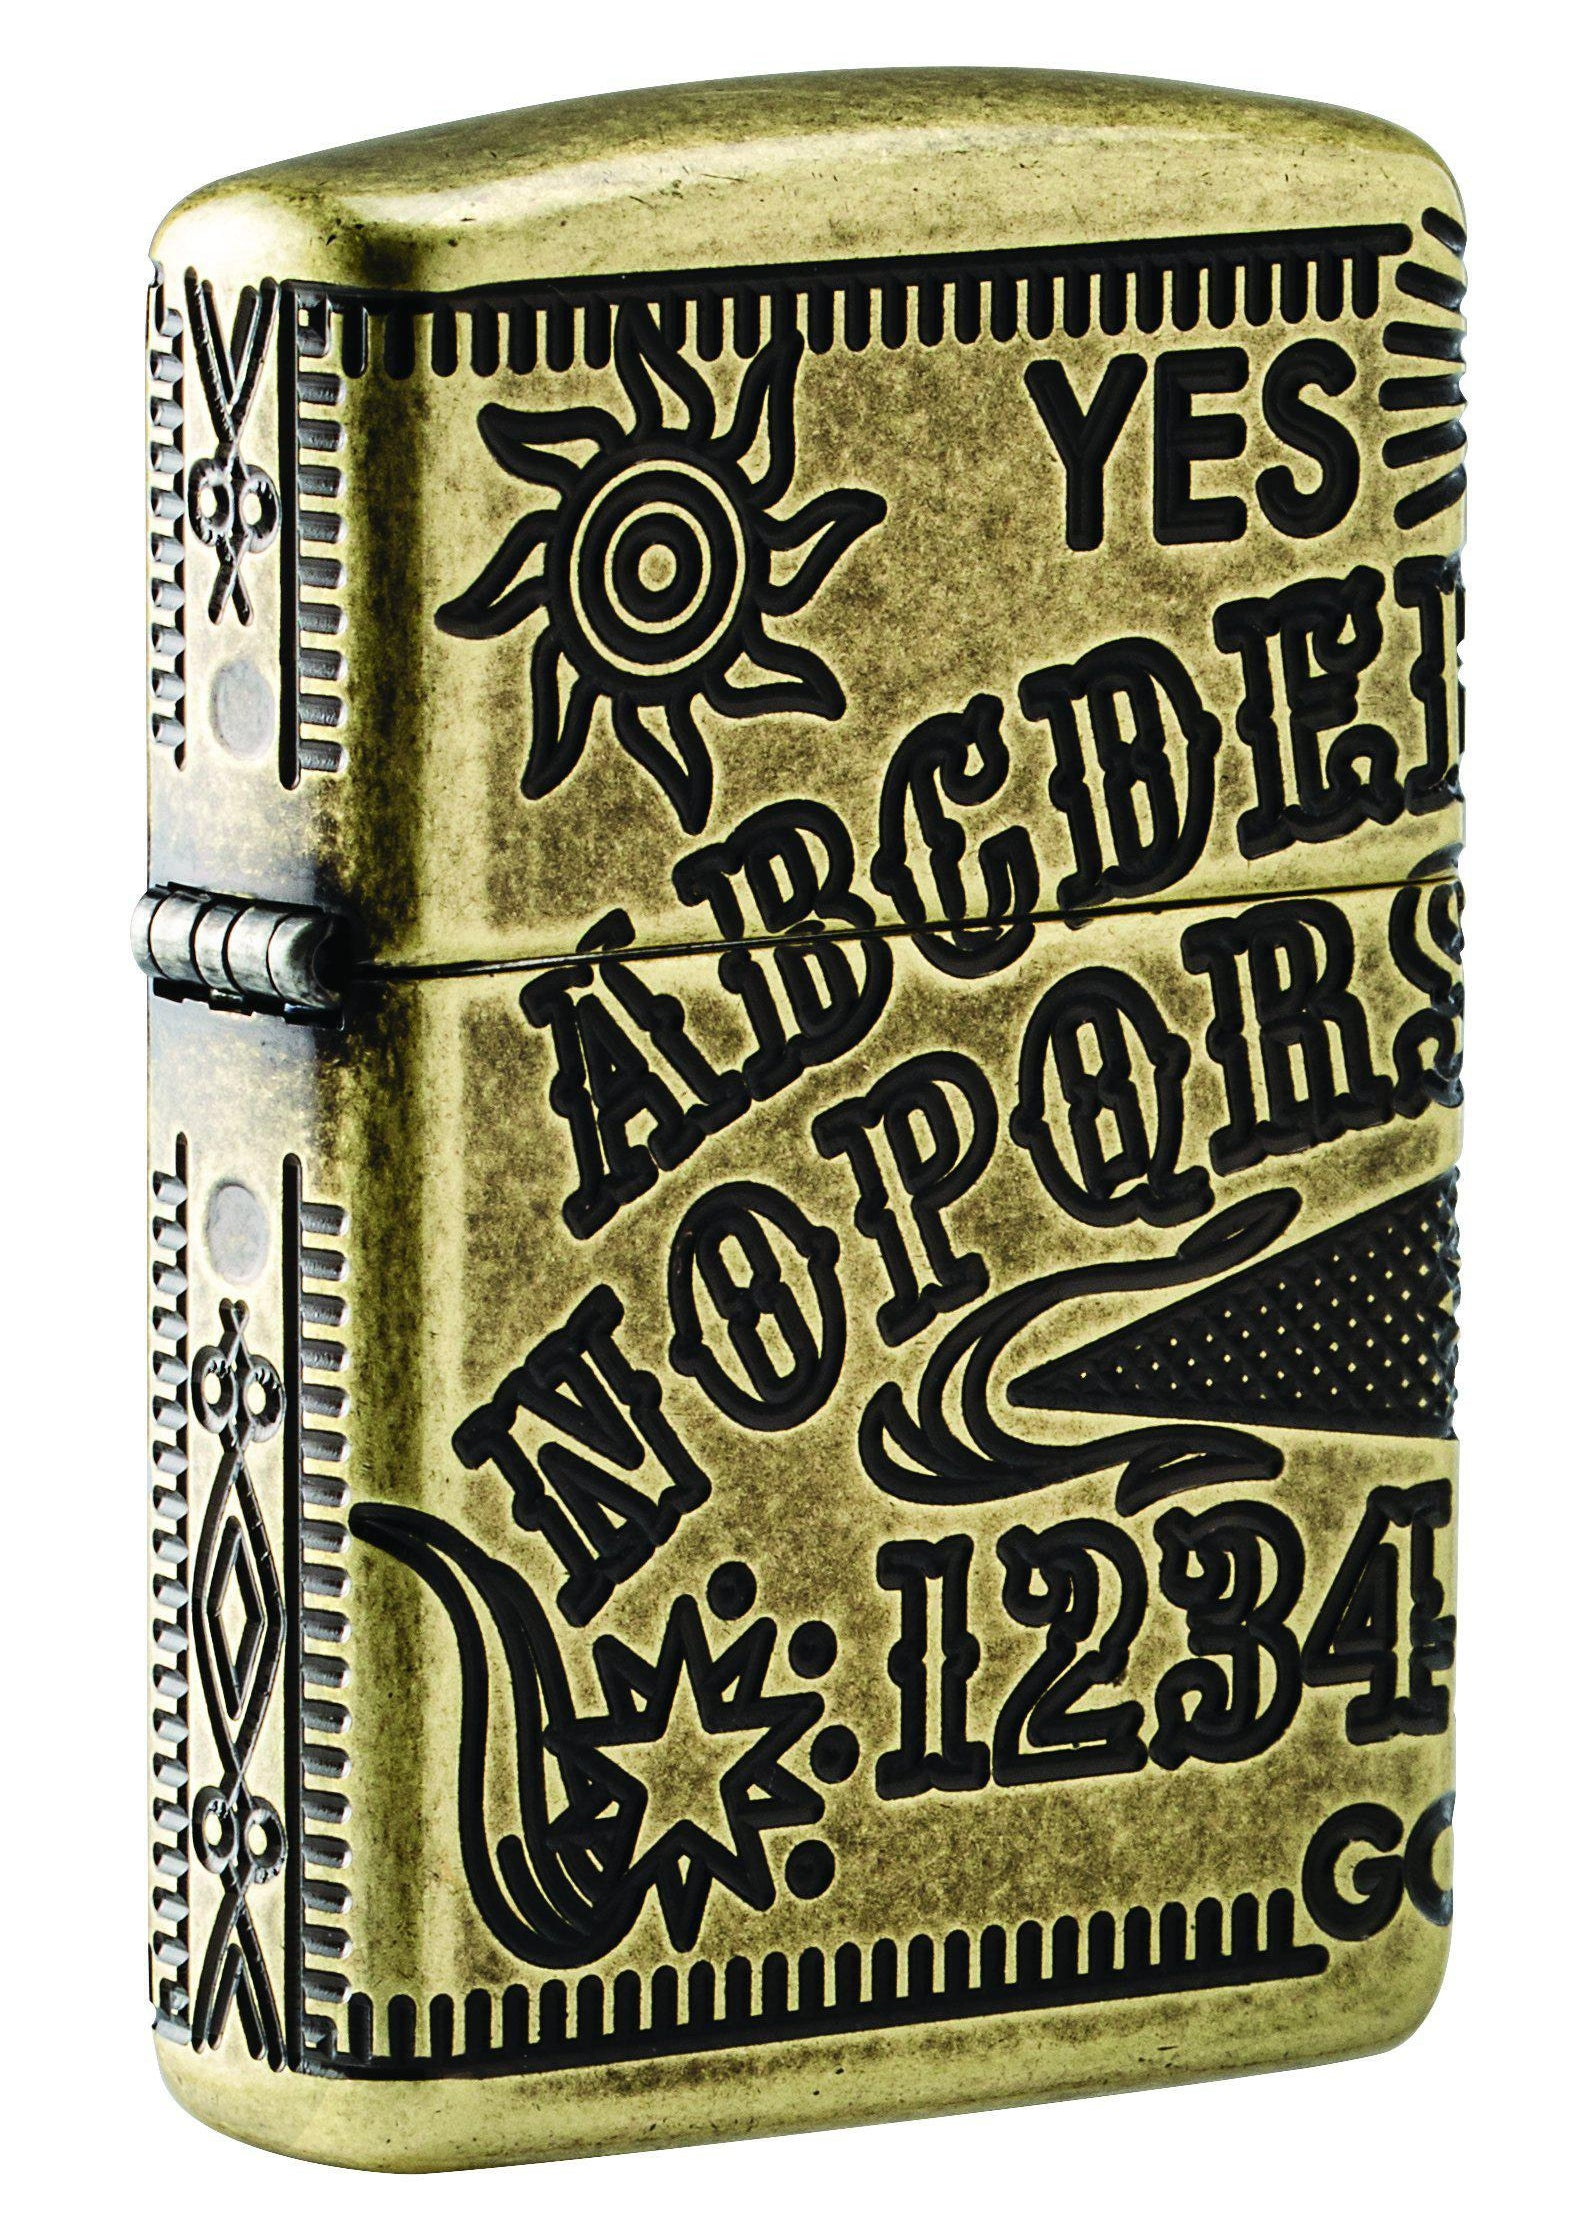 Zippo Lighter: Armor MultiCut Ouija Board - Antique Brass 49001